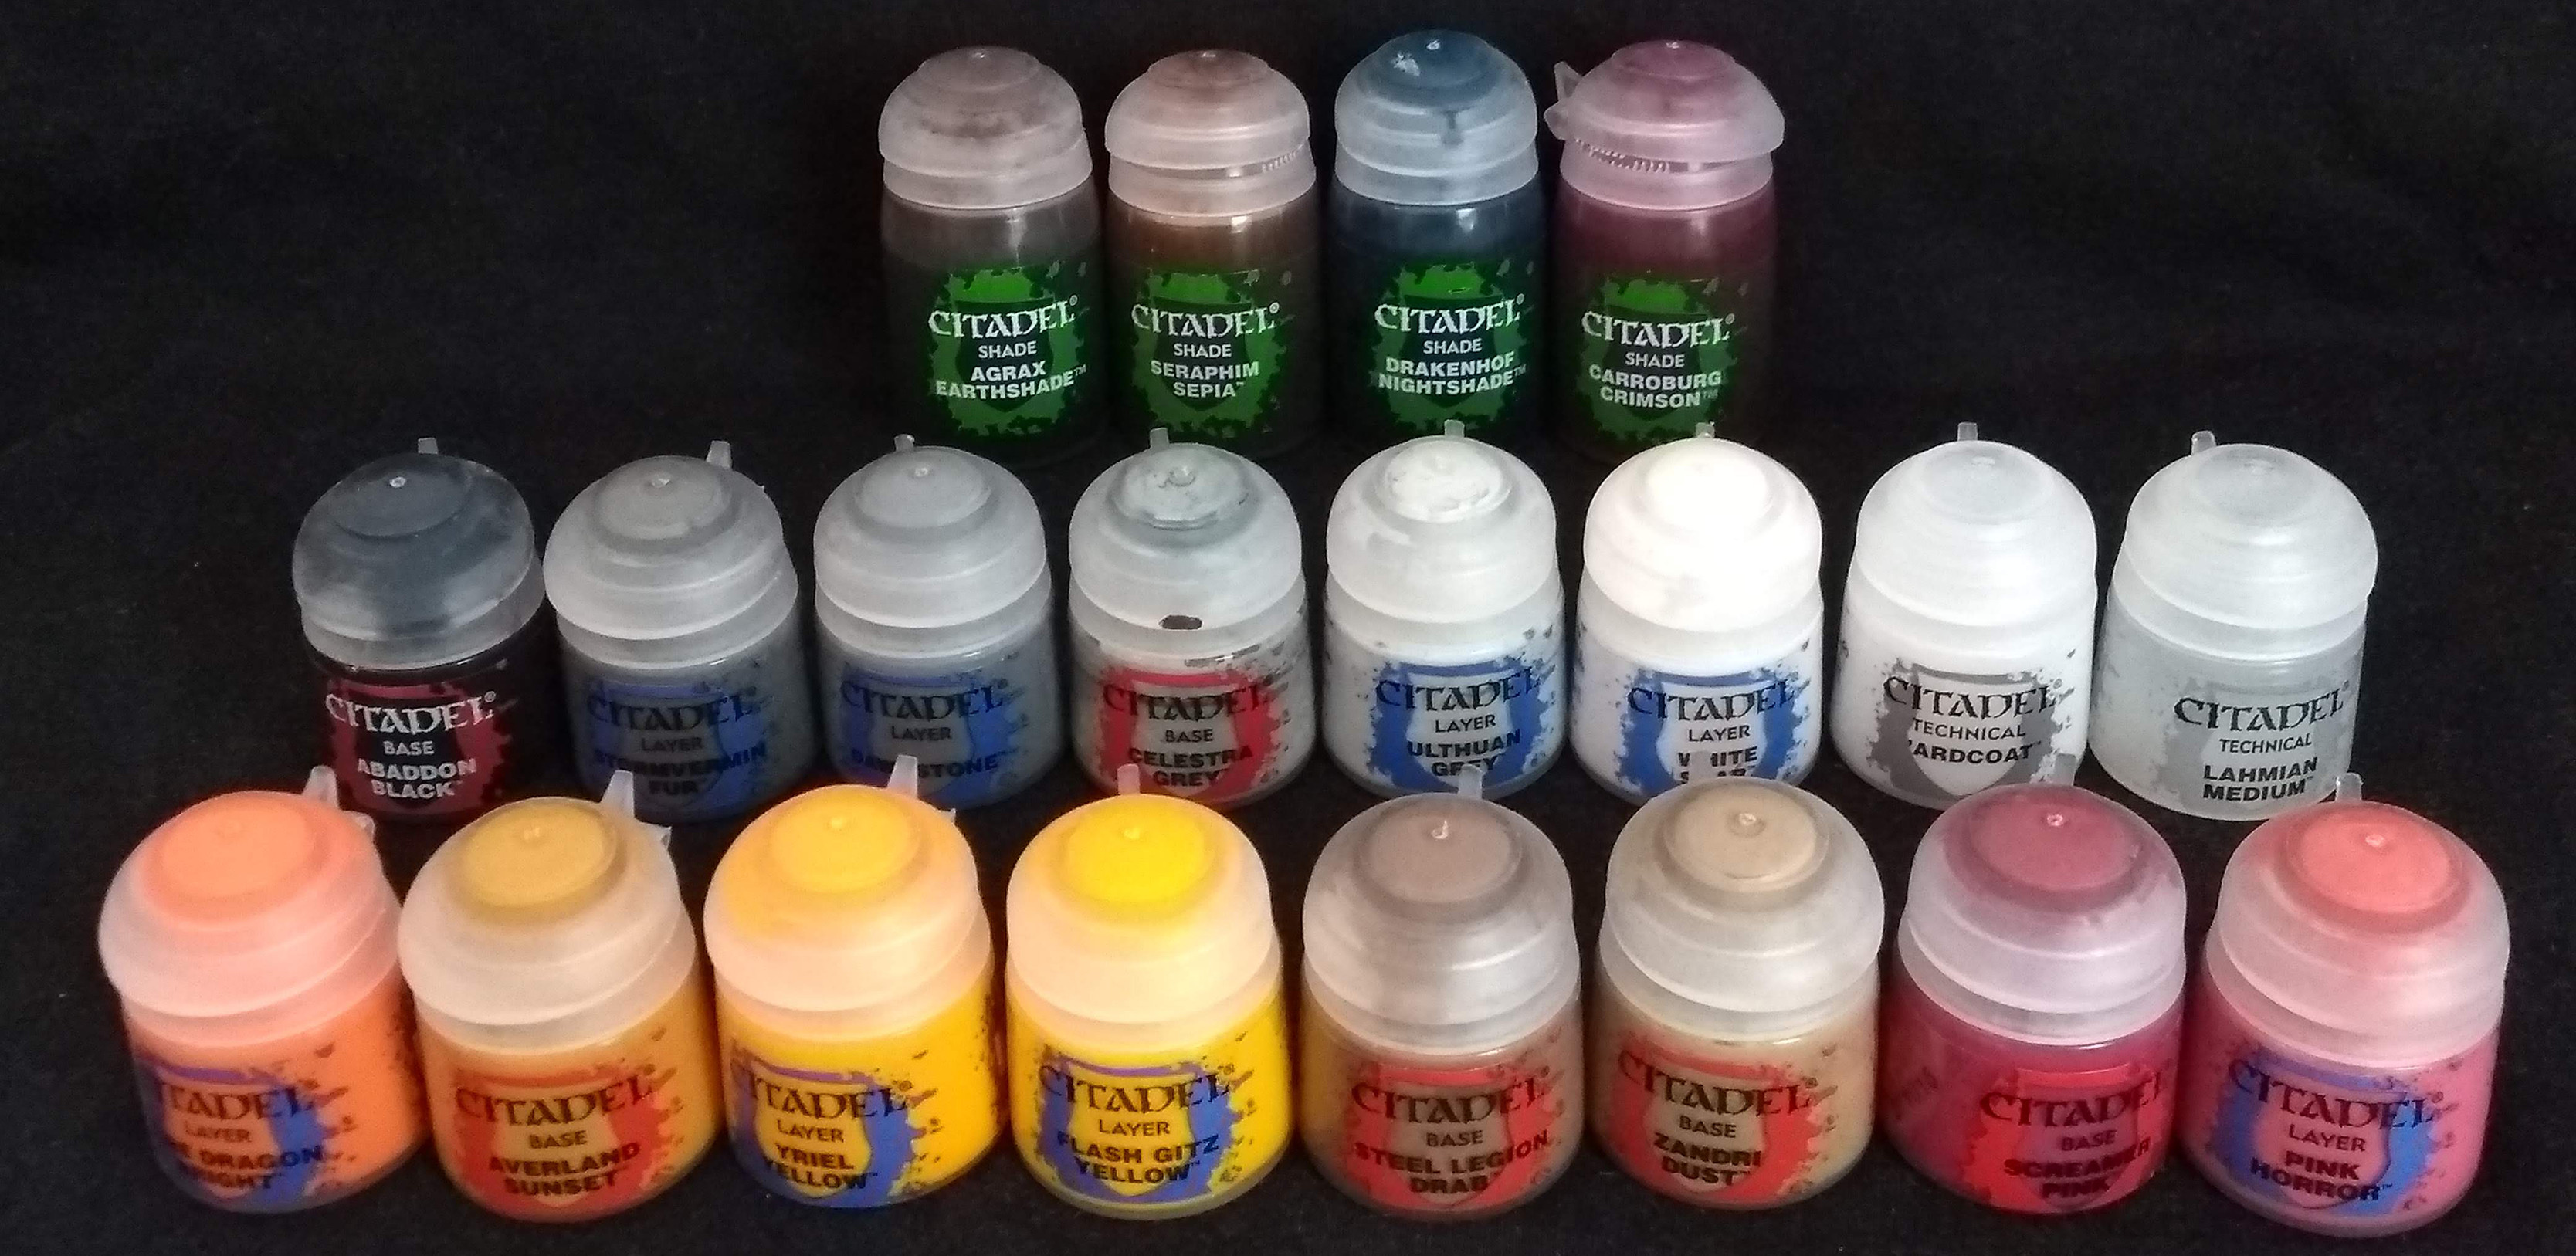 Used citadel paints (because they are the bomb)